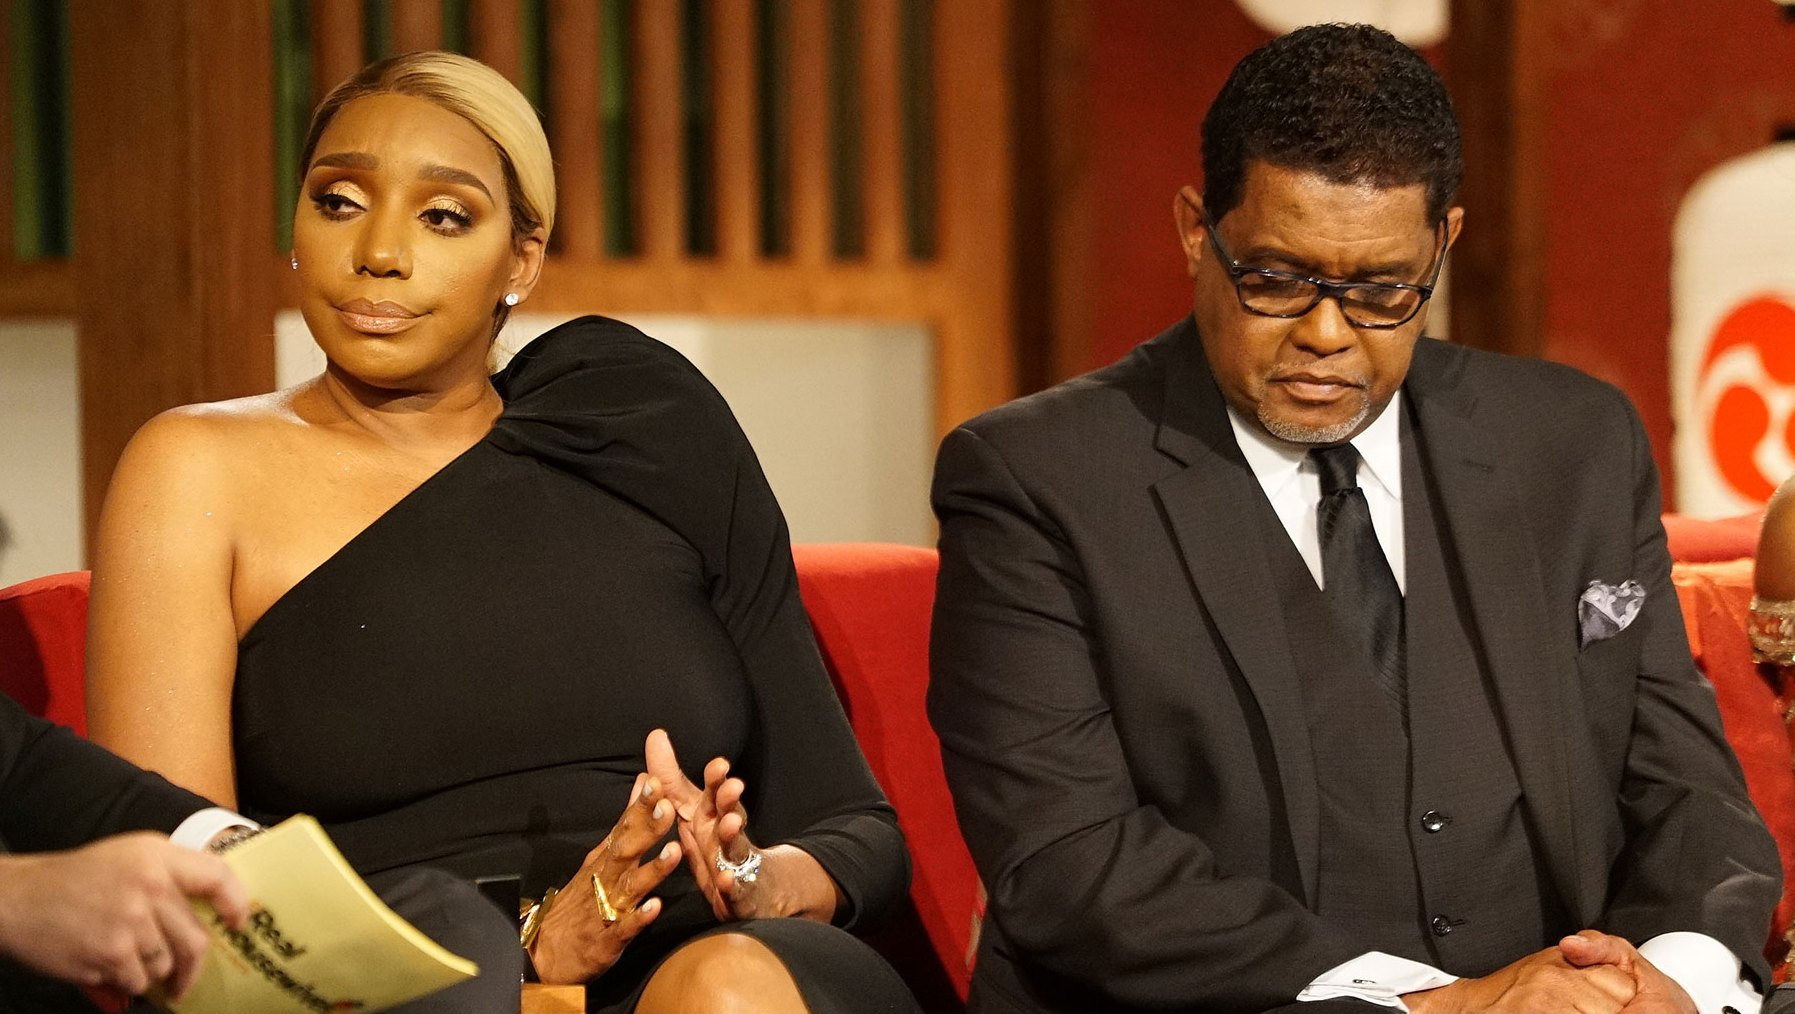 NeNe Leakes and Husband Gregg Address His Previous Infidelity on 'Real Housewives of Atlanta' Reunion